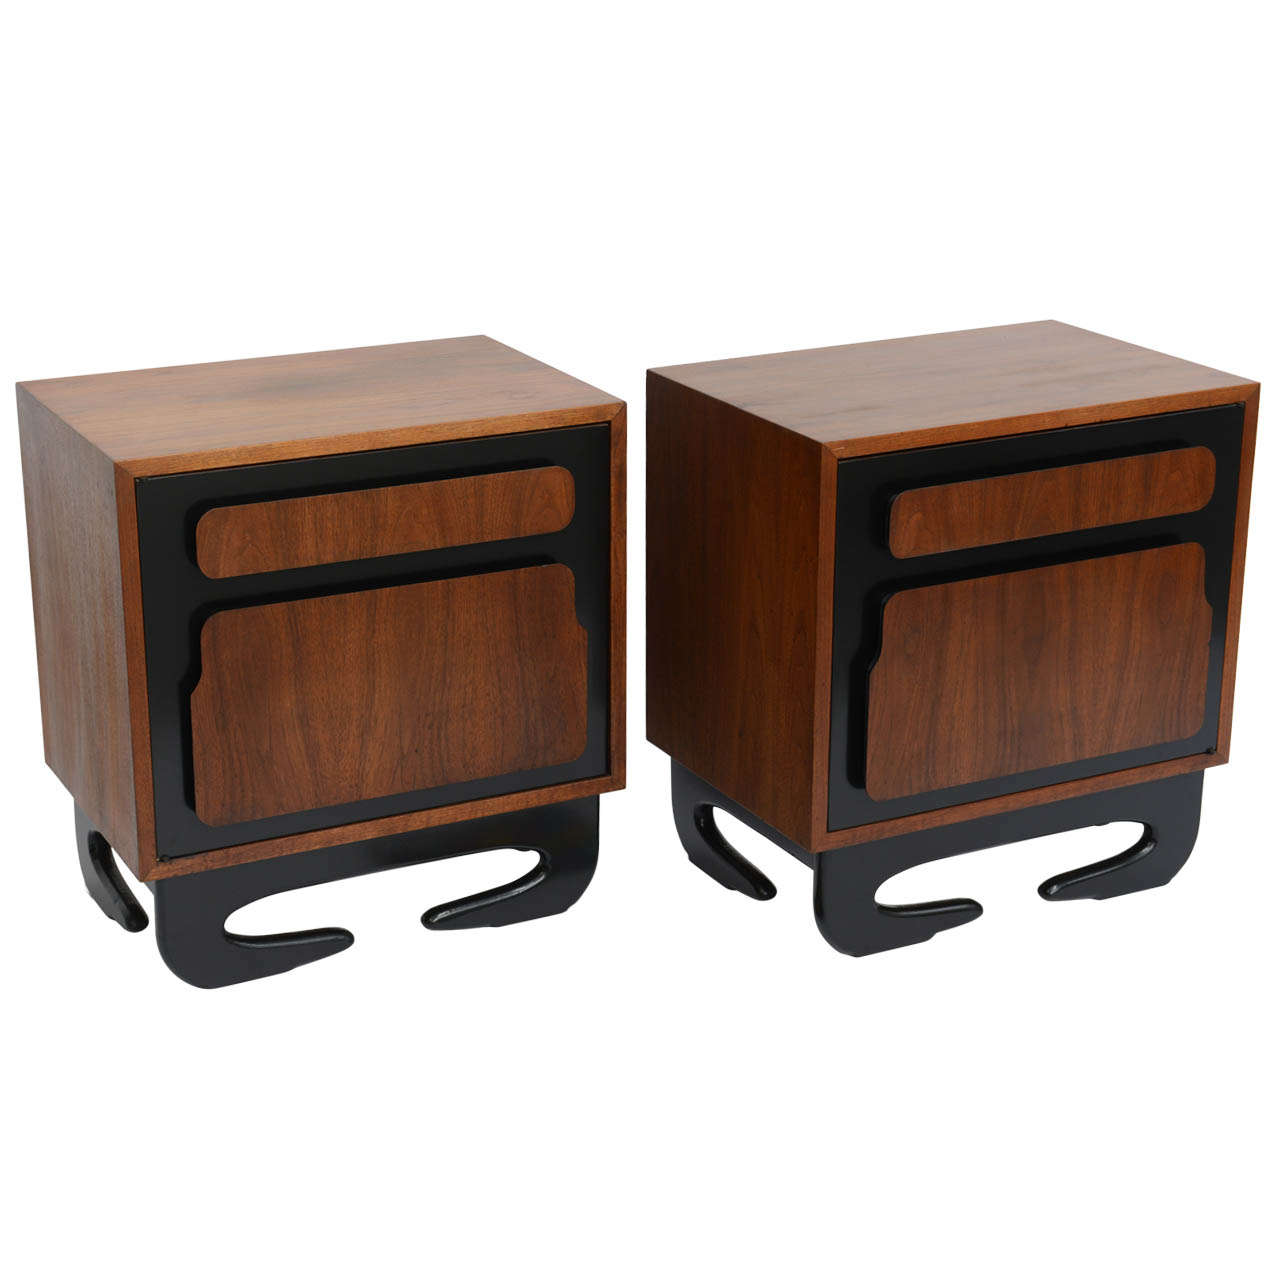 Extraordinary Kagan Style Bedside Tables Nightstands For Sale at